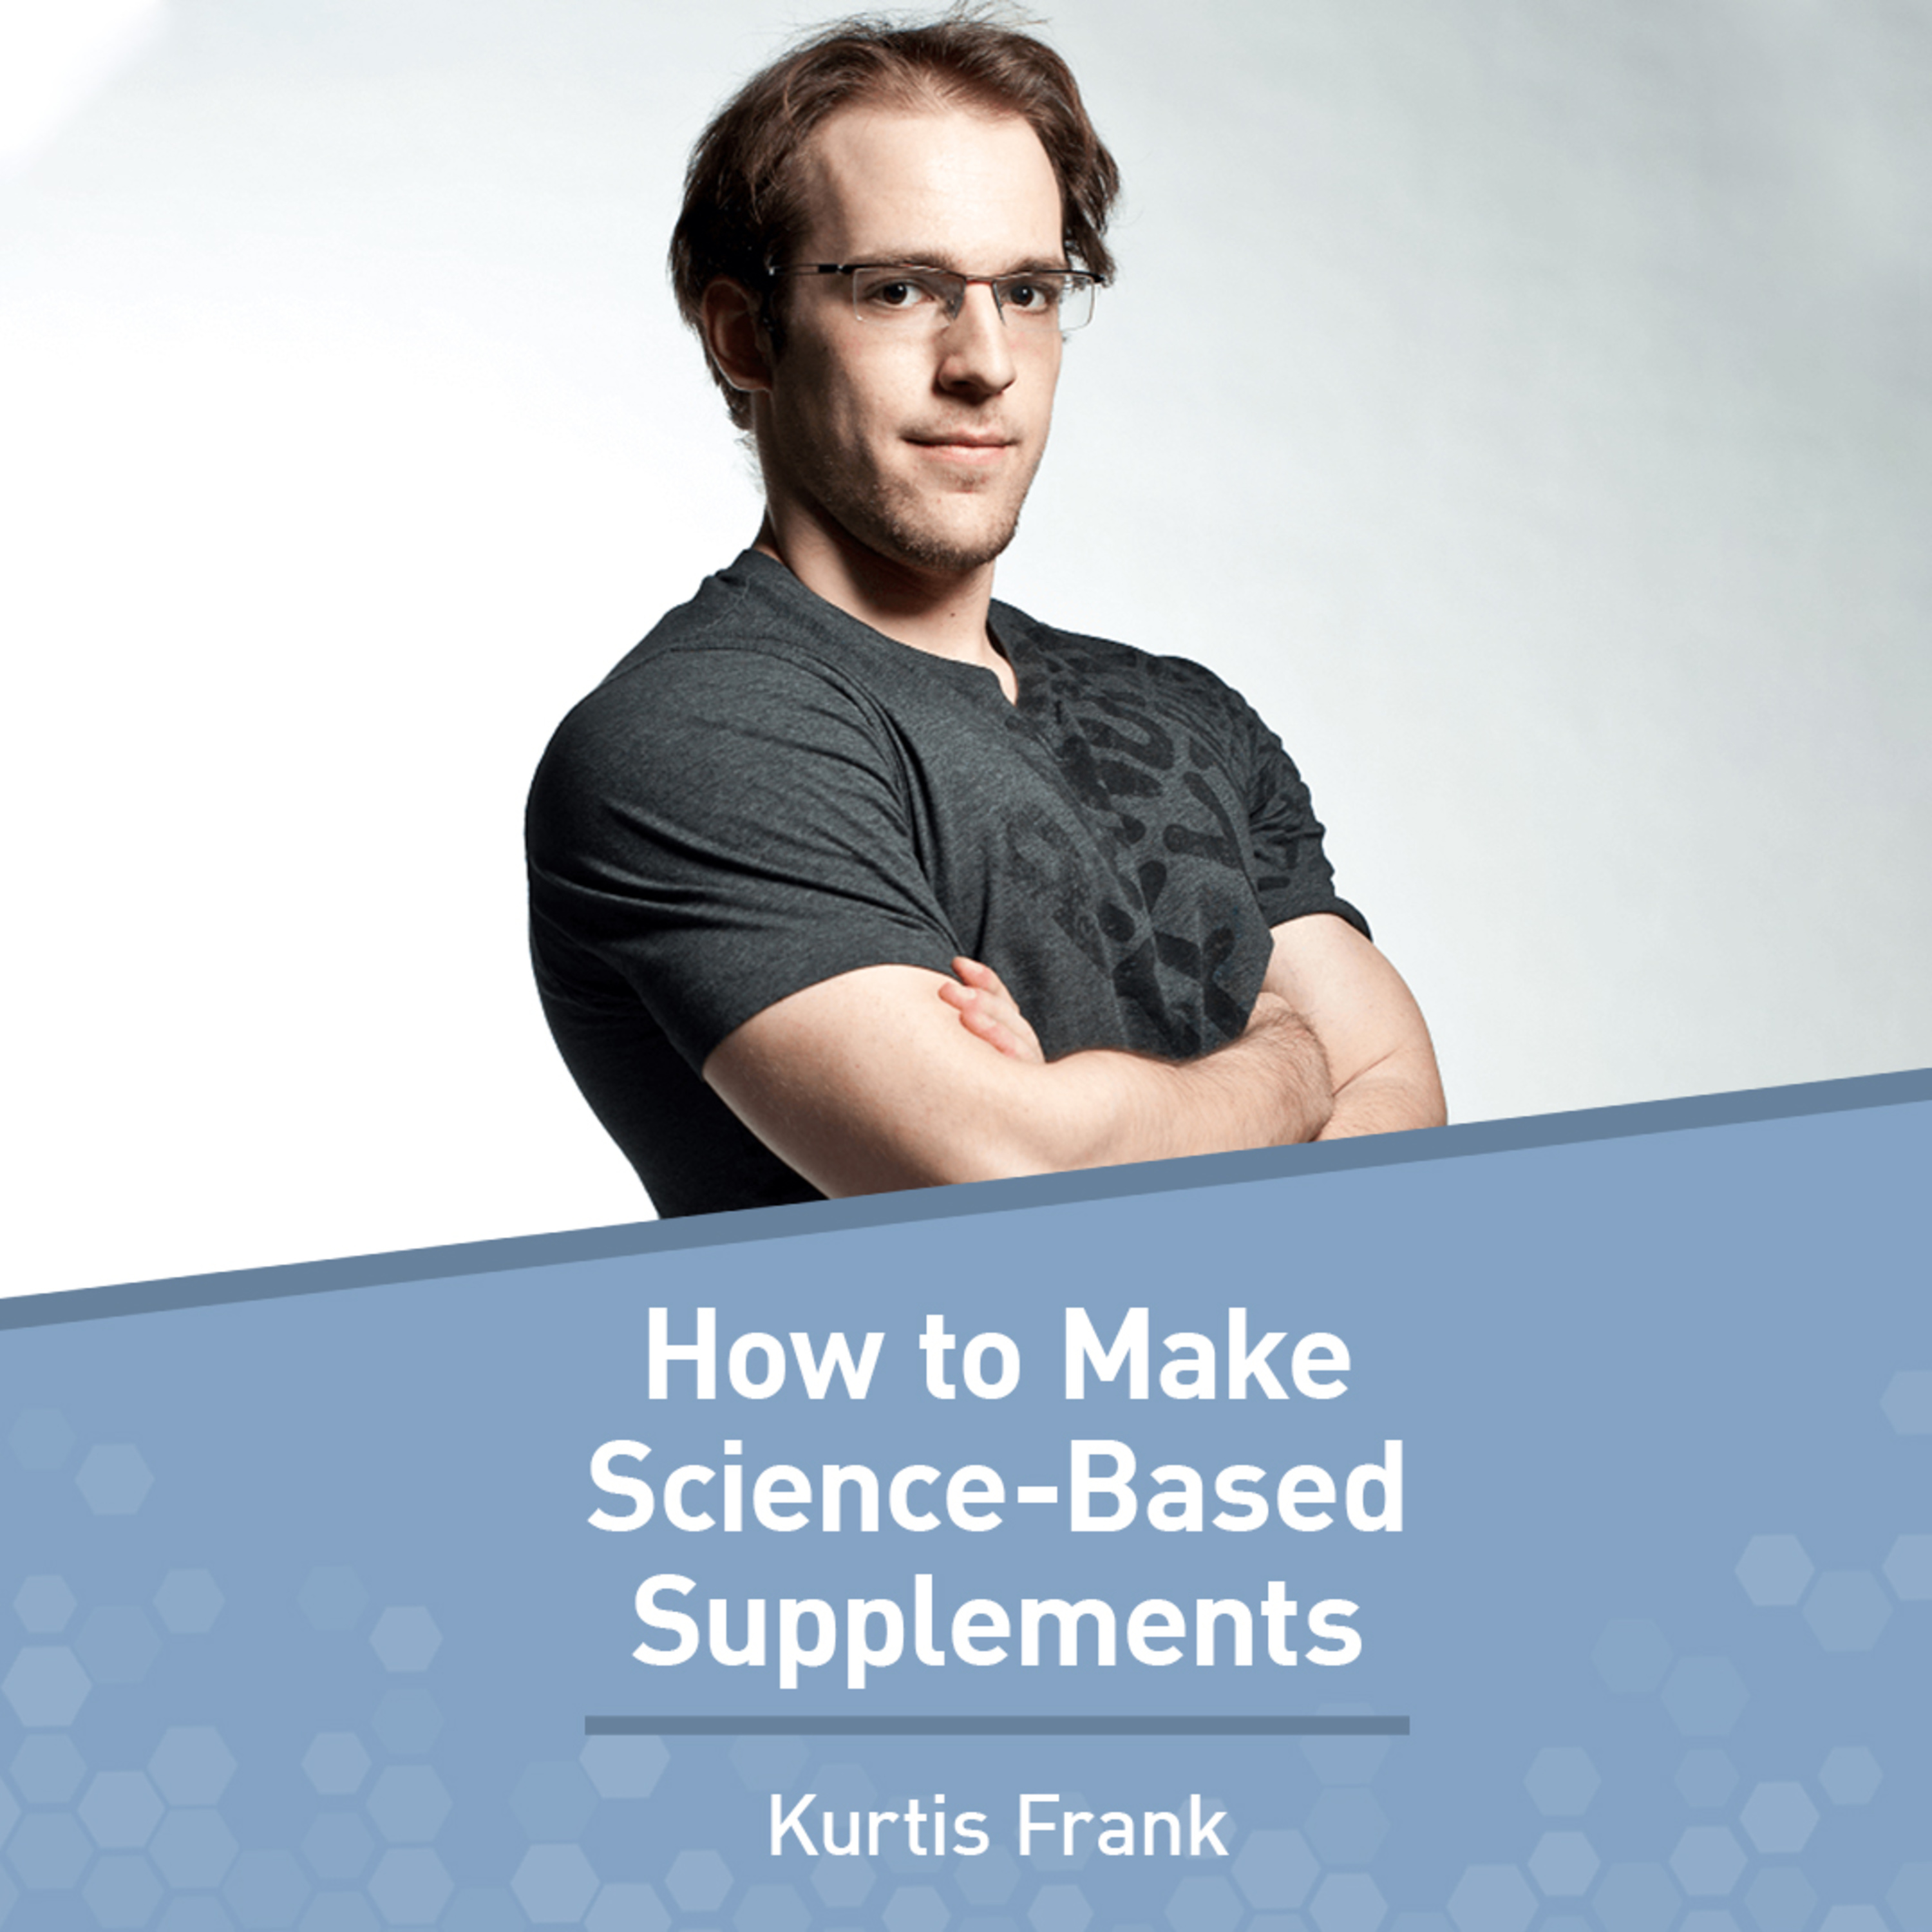 Kurtis Frank on the Art and Science of Making Science-Based Supplements